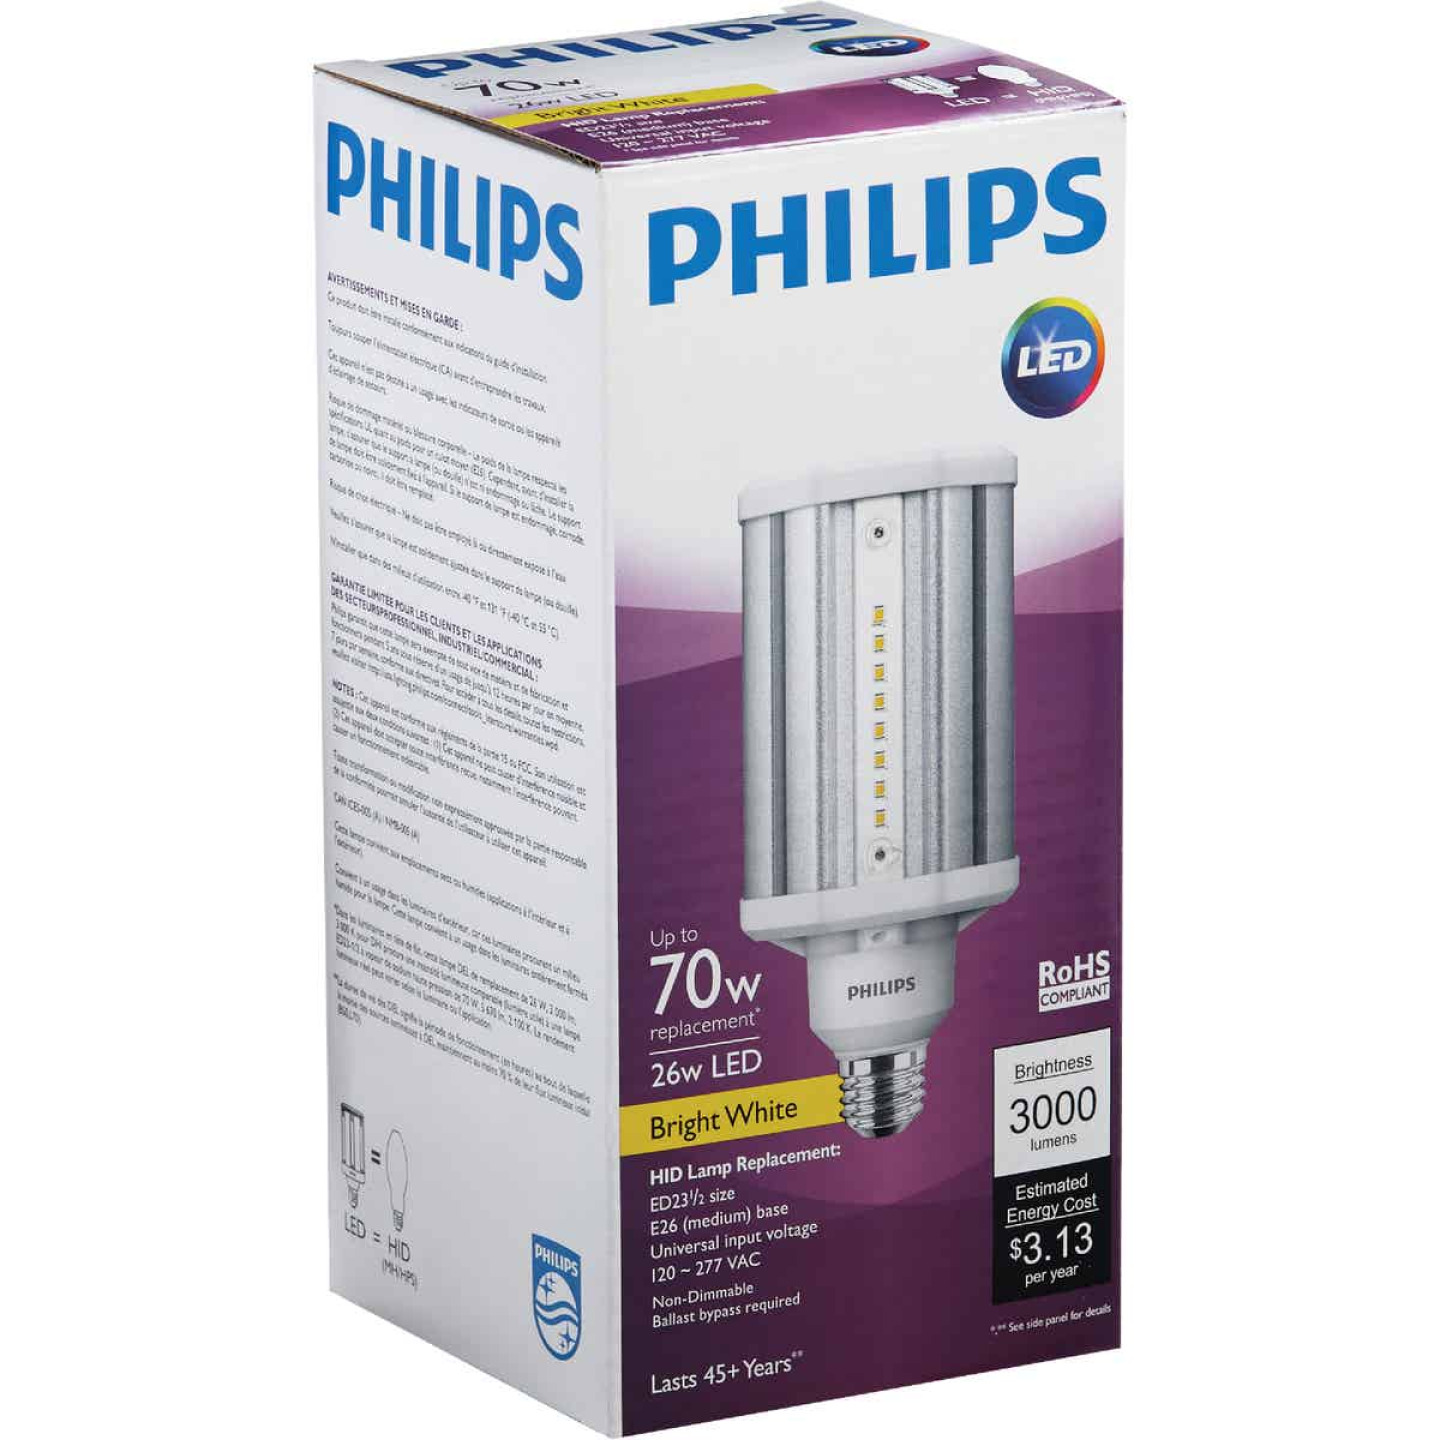 Philips TrueForce 26W Clear Corn Cob Medium Base LED High-Intensity Light Bulb Image 4